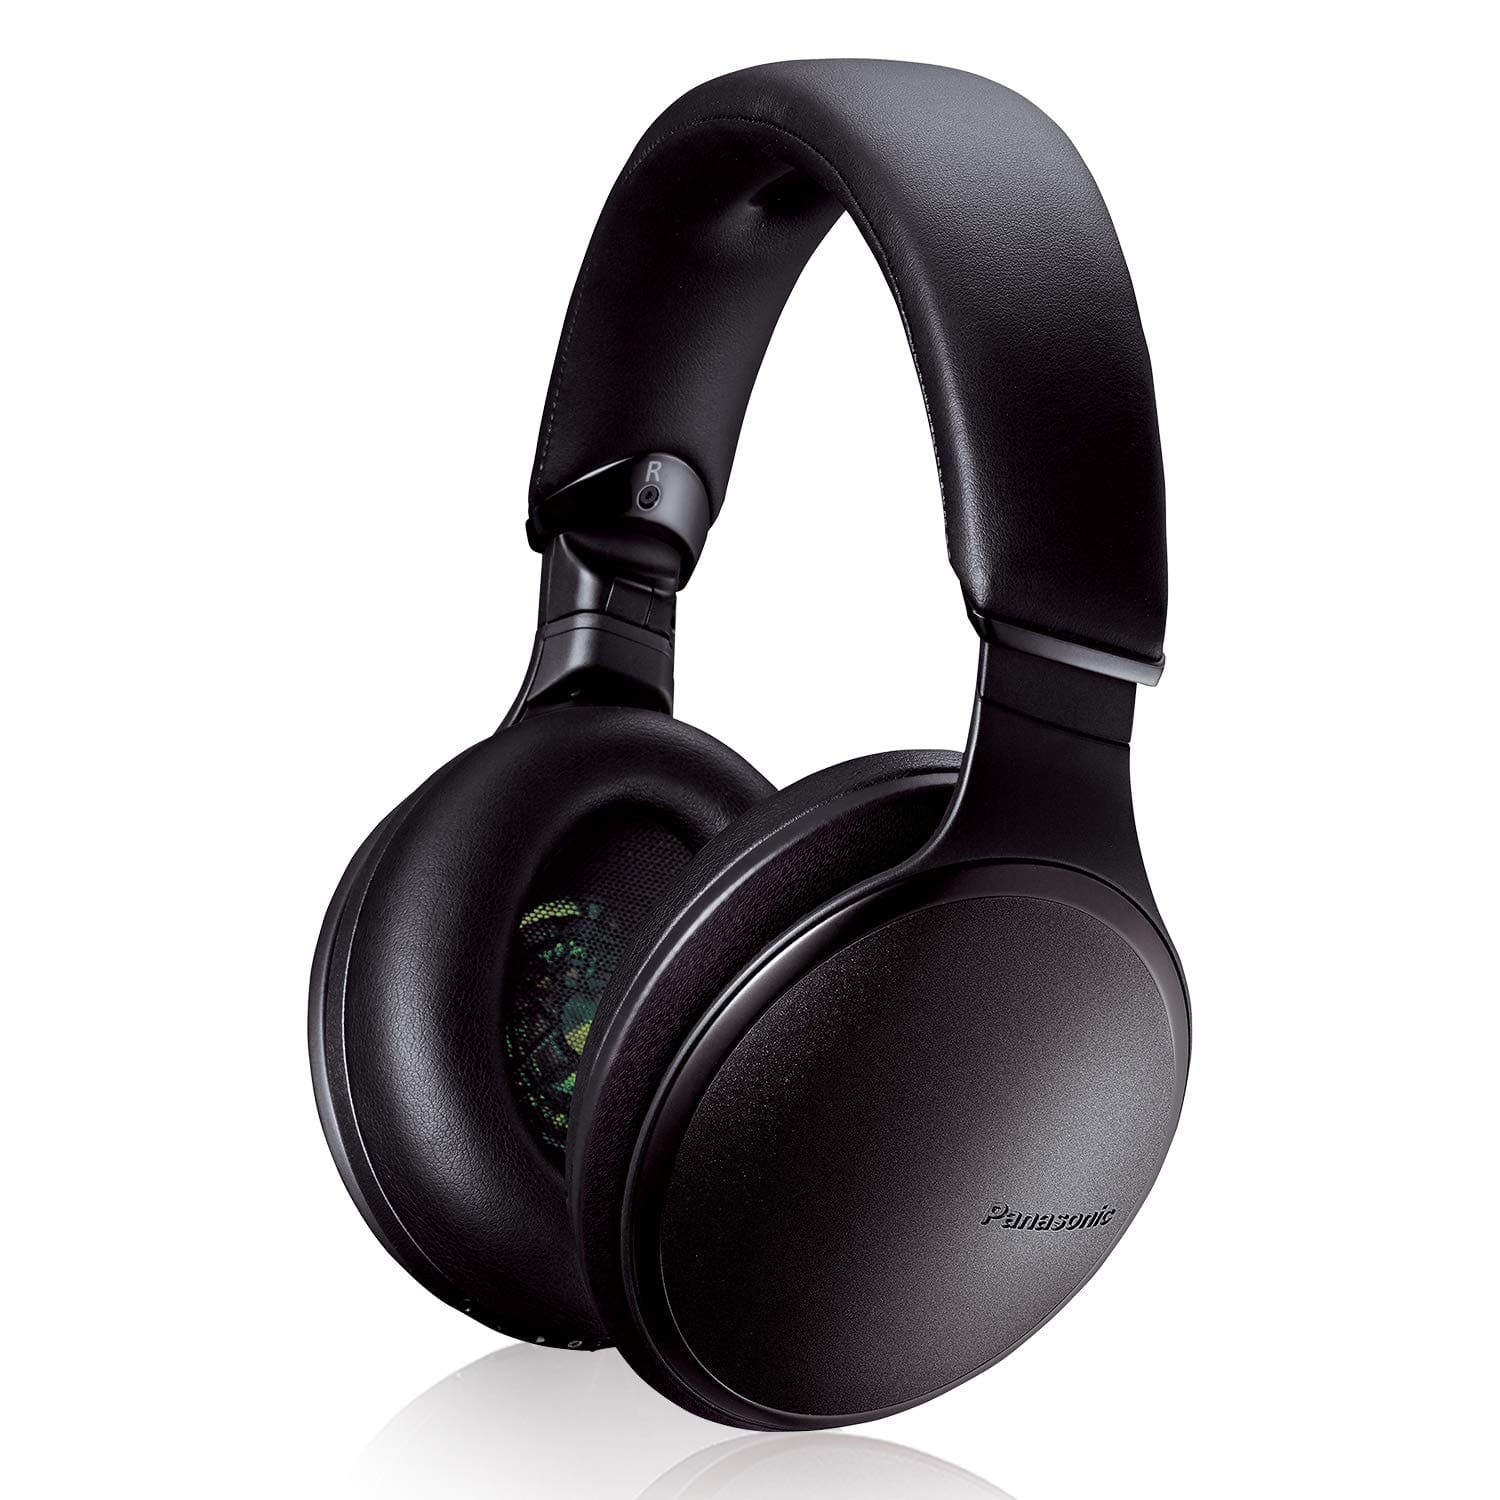 Panasonic Noise Cancelling Over The Ear Headphones with Wireless Bluetooth, Alexa Voice Control & Other Assistants – Black (RP-HD805N-K) FOR $91.07